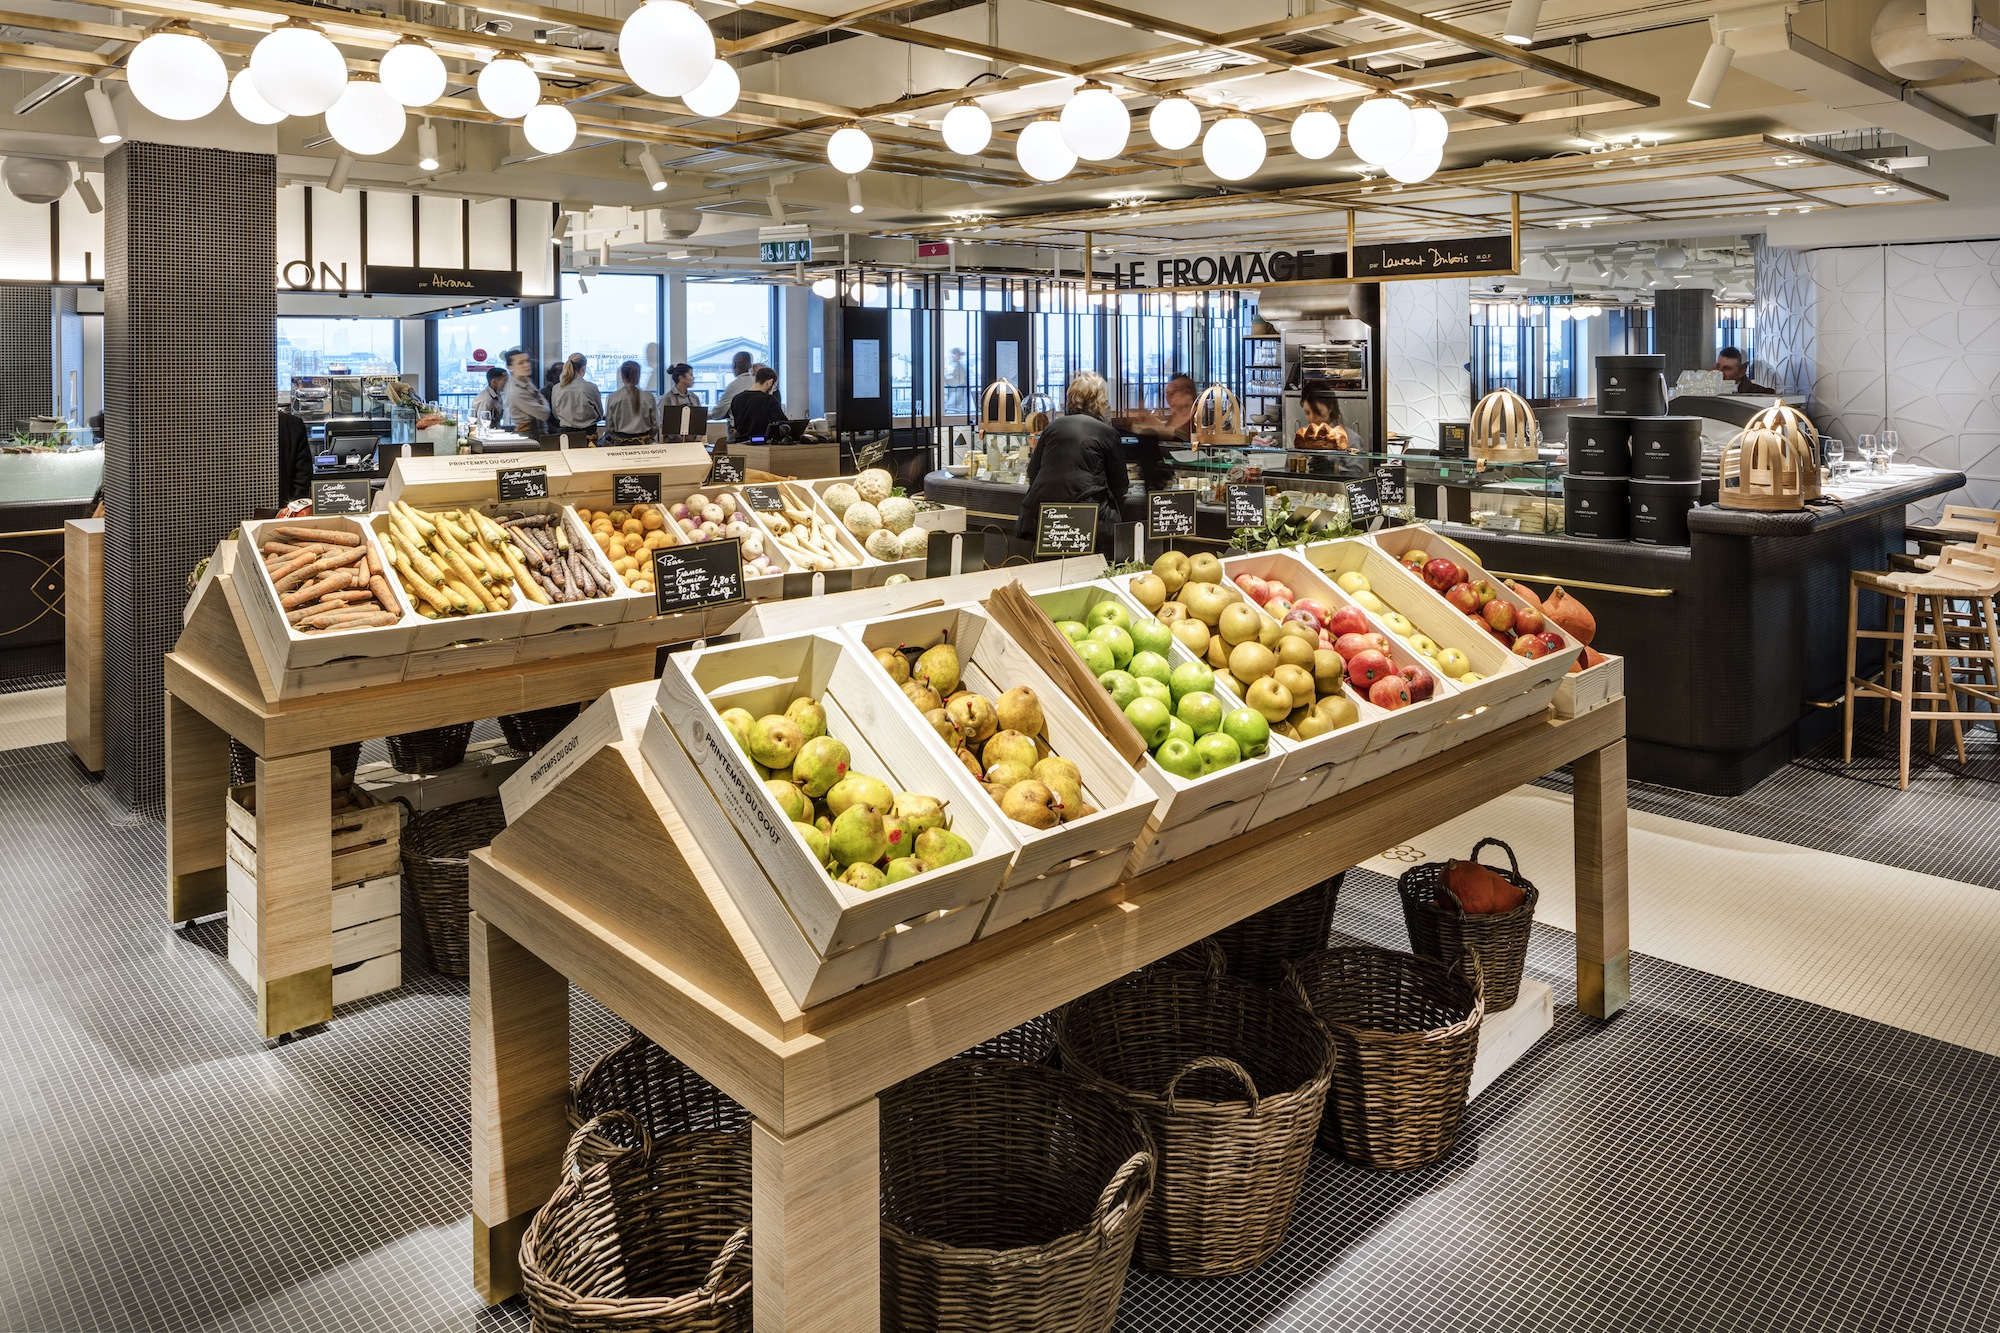 The fruit and vegetables in wooden crates at Printemps du Gout at department store Printemps in Paris.